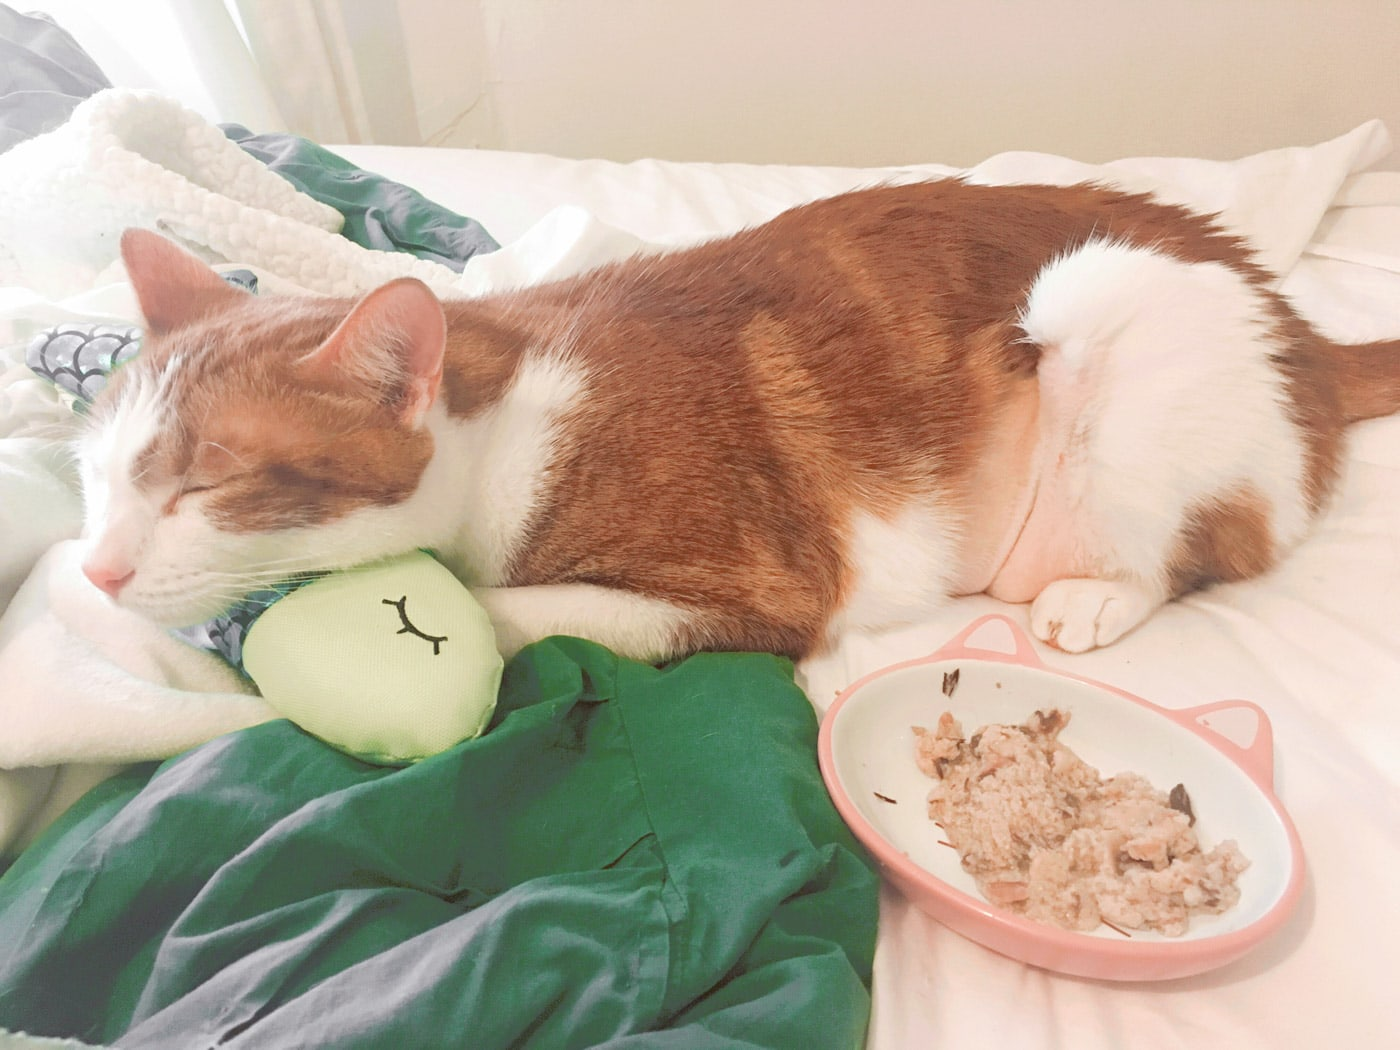 Rooney my cat gets everything he wants after surgery. Like a new crinkle fish cat toy and chicken in bed.